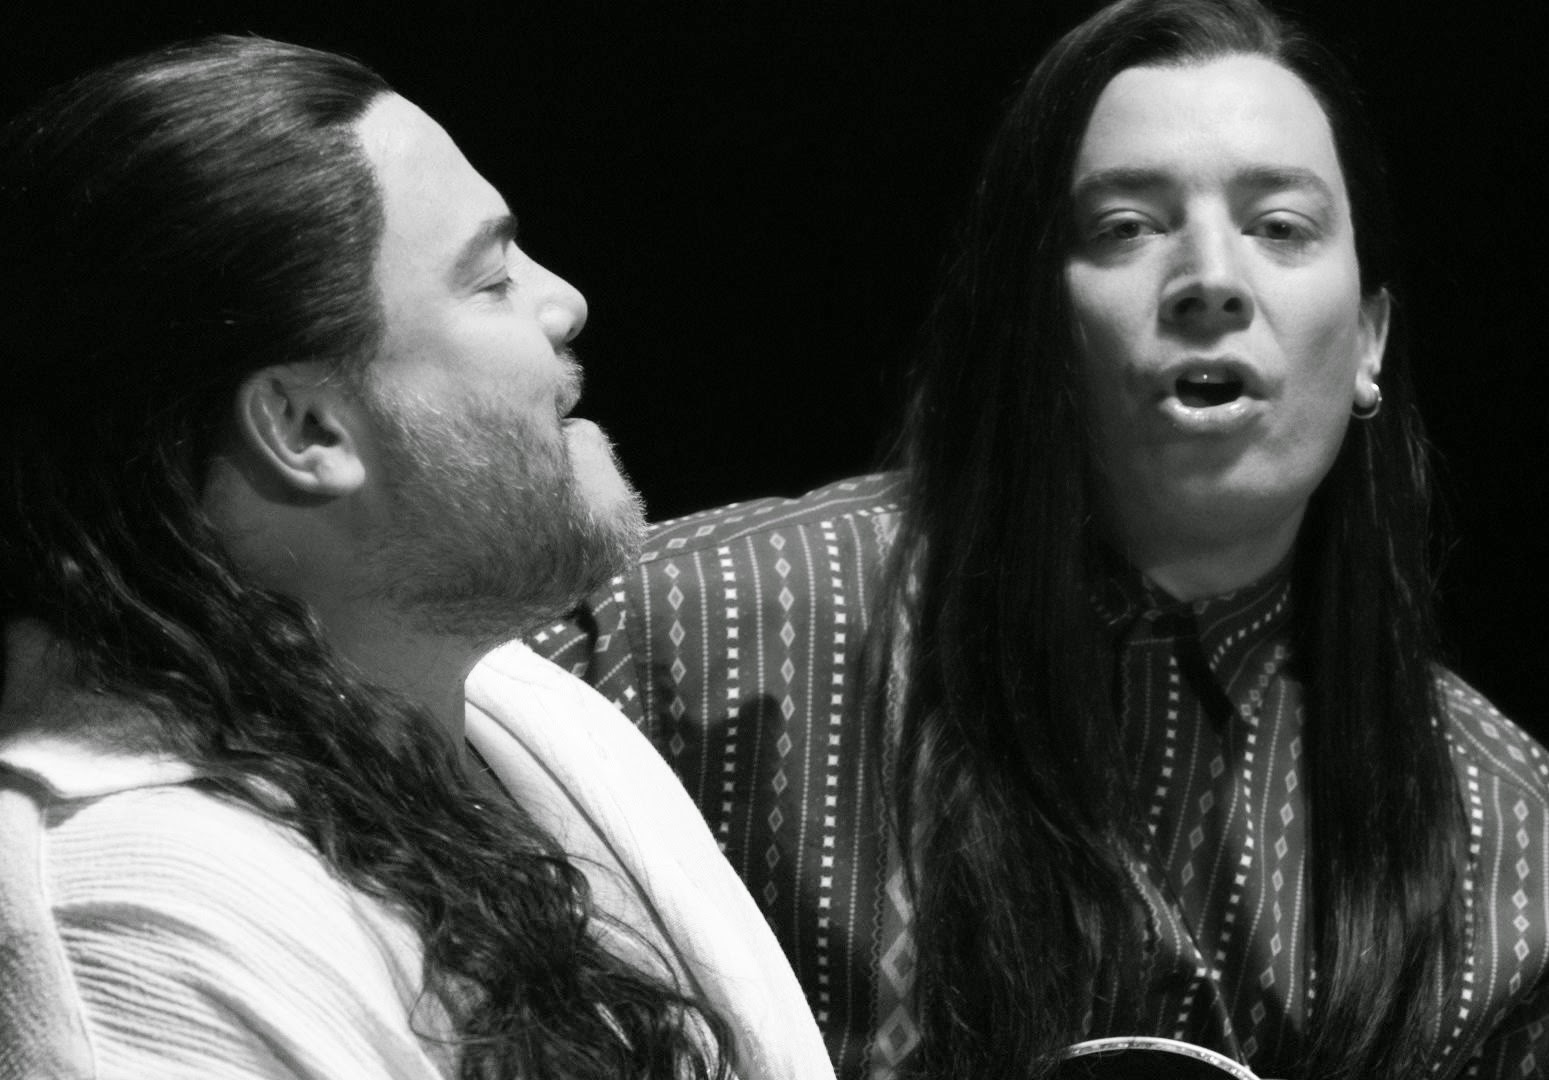 Watch Jack Black & Jimmy Fallon Take On Extreme's More Than Words